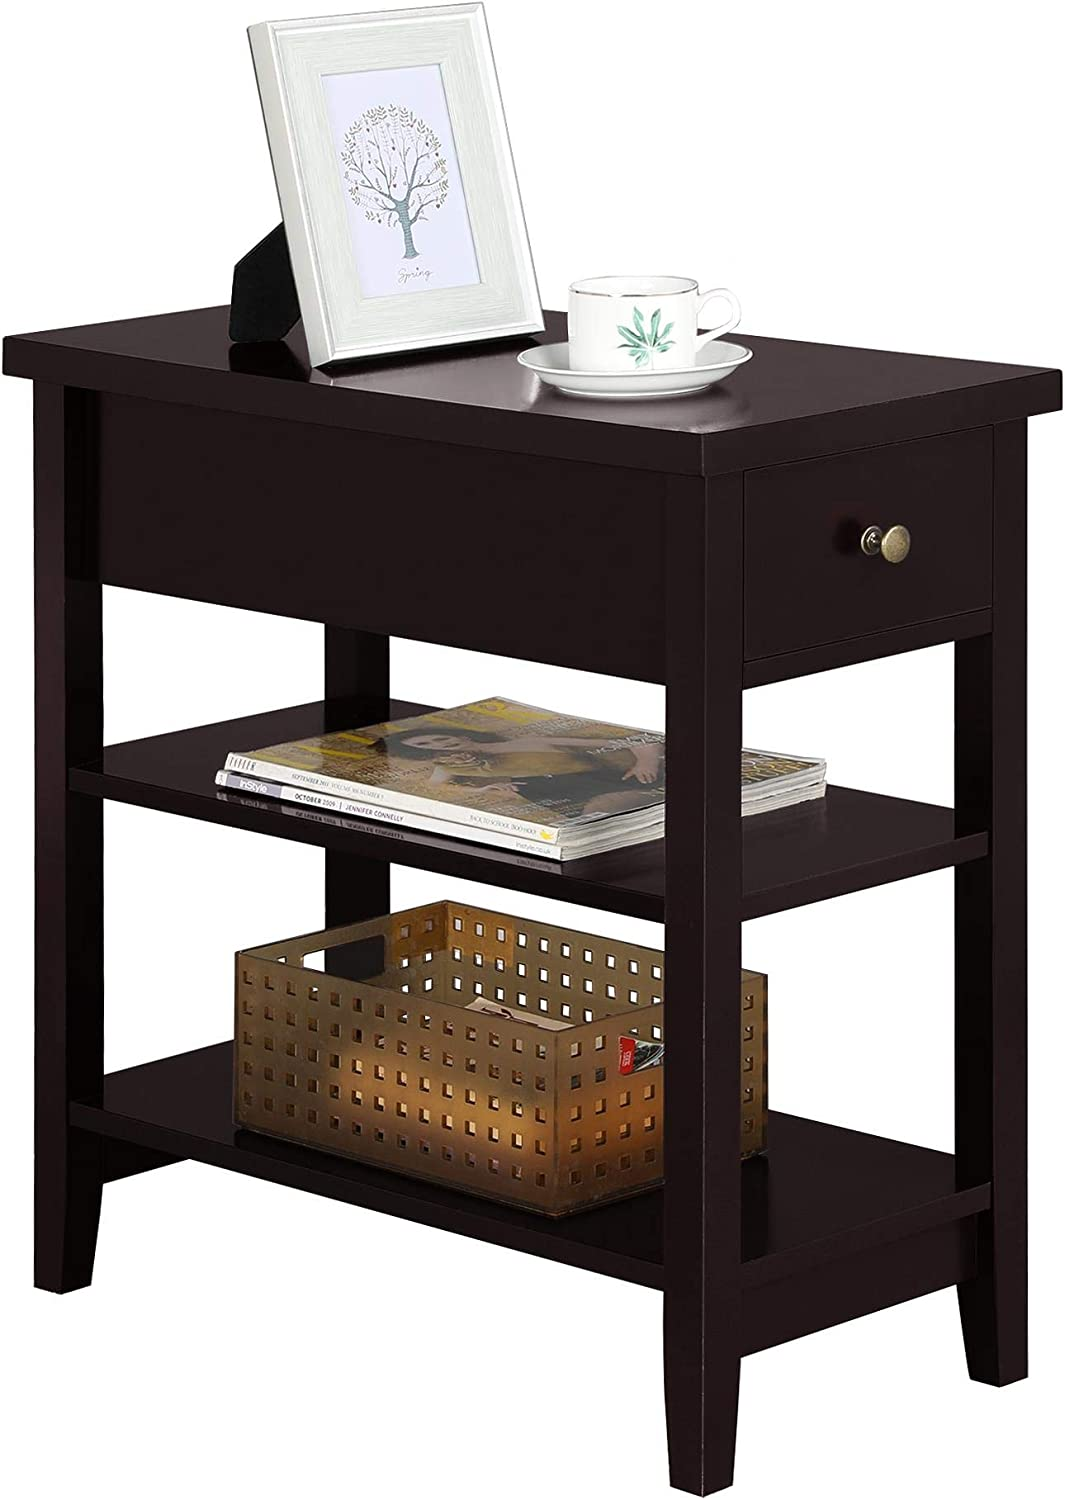 YAHEETECH End Table Sofa Side with Double Max 90% OFF 1 She and Luxury Drawer